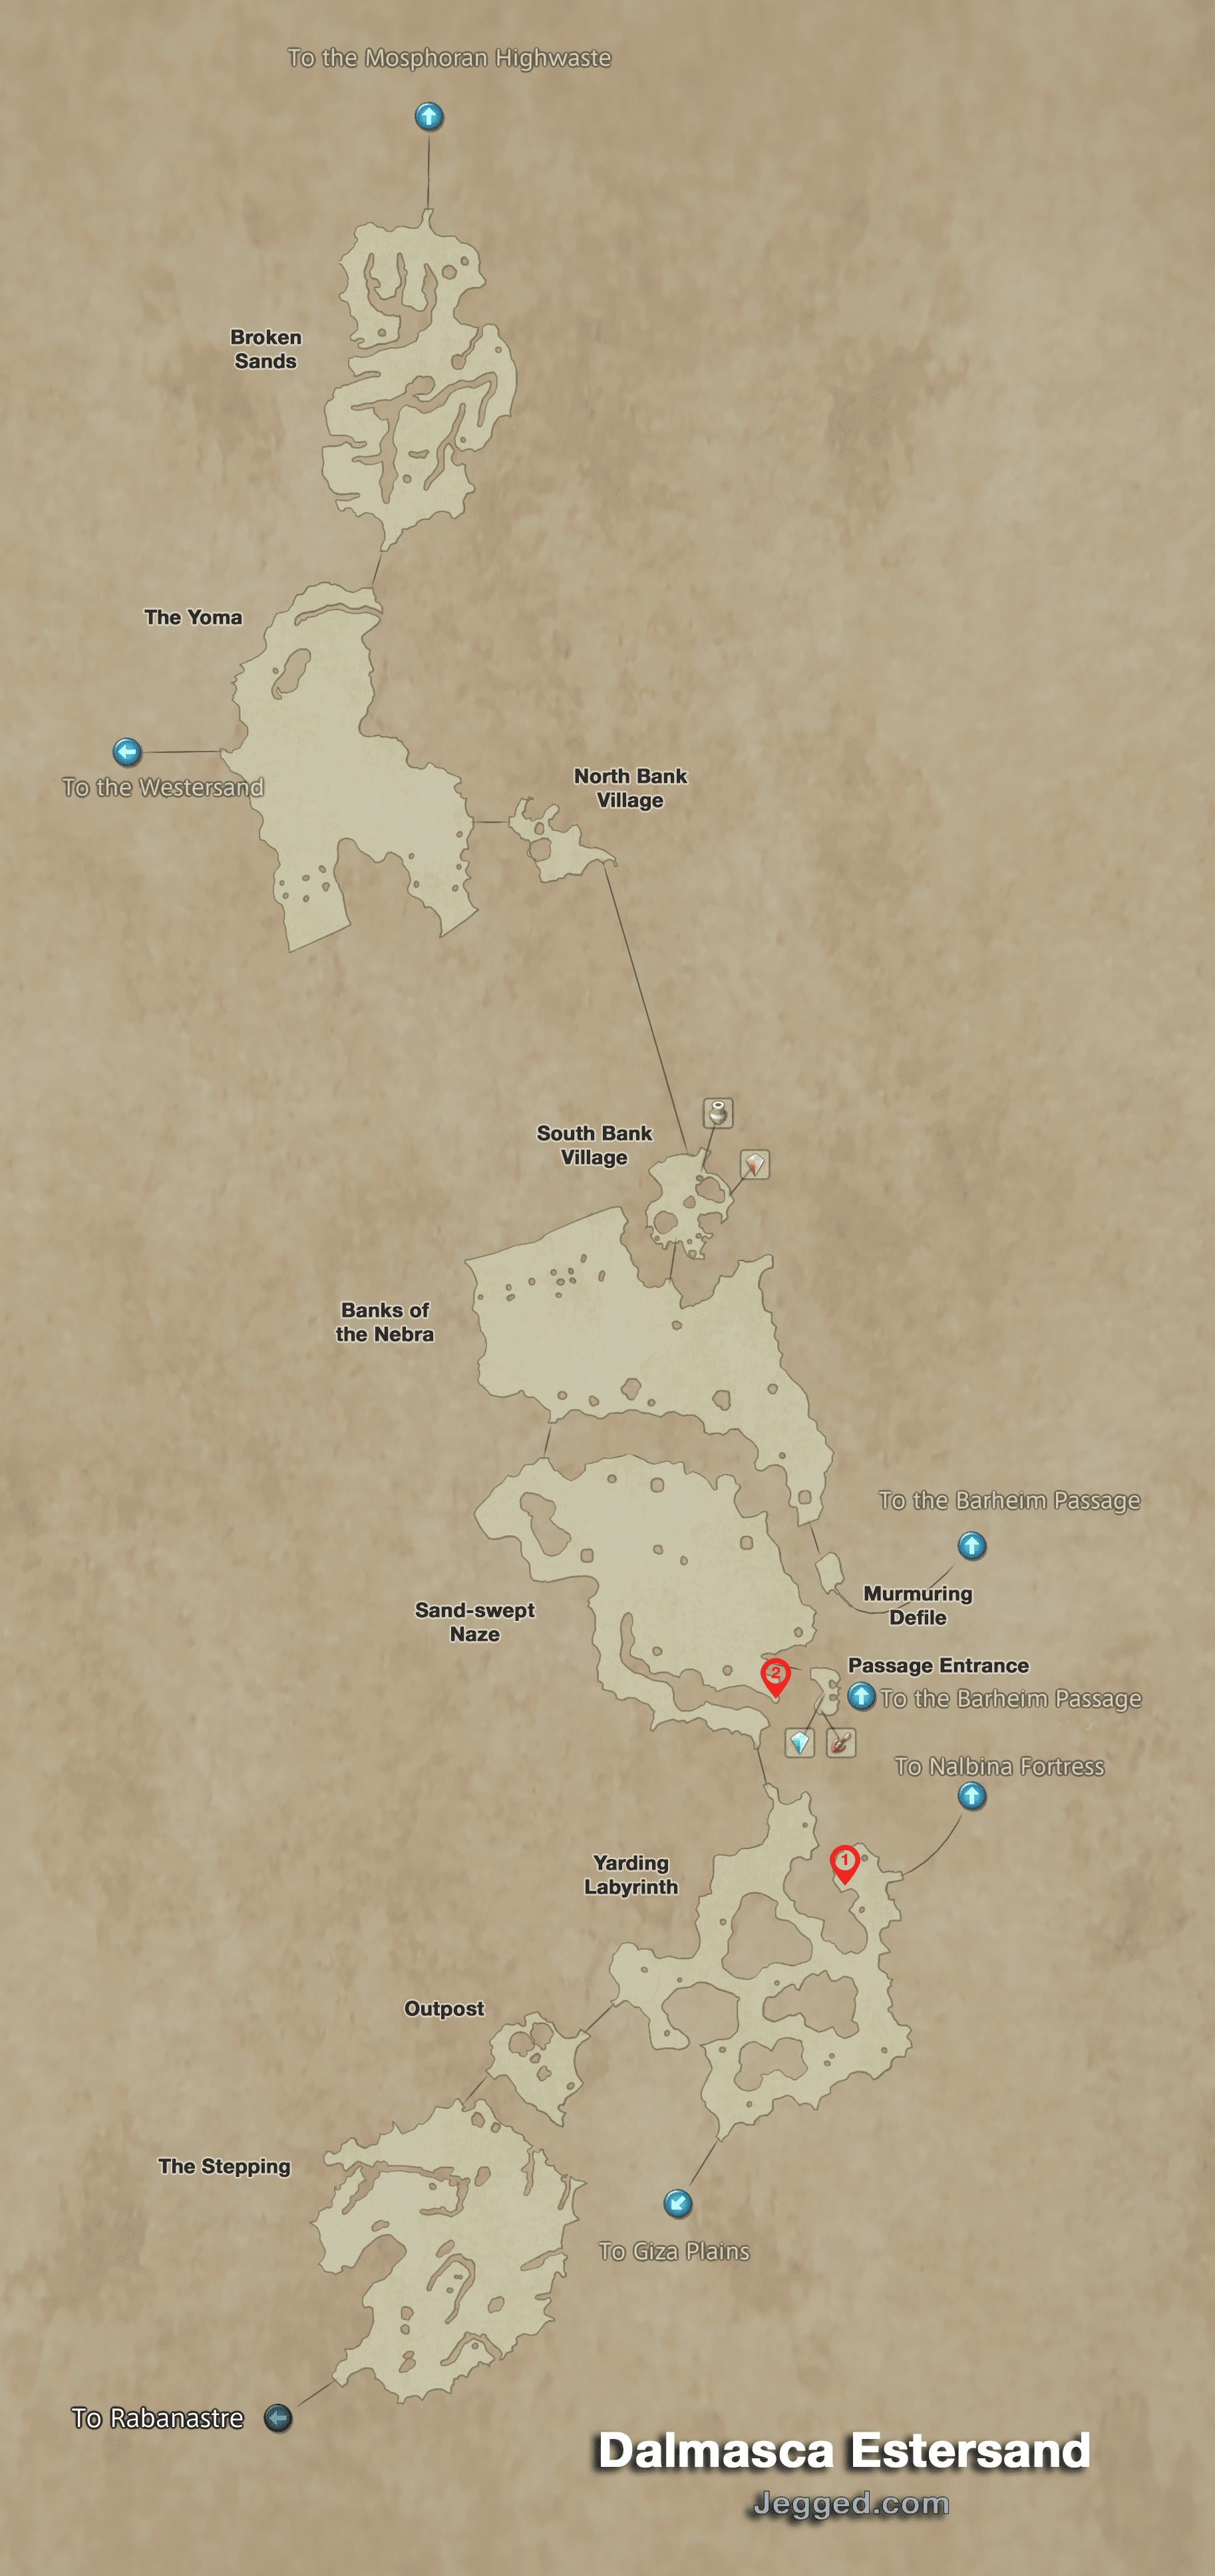 Map of the Dalmasca Estersand